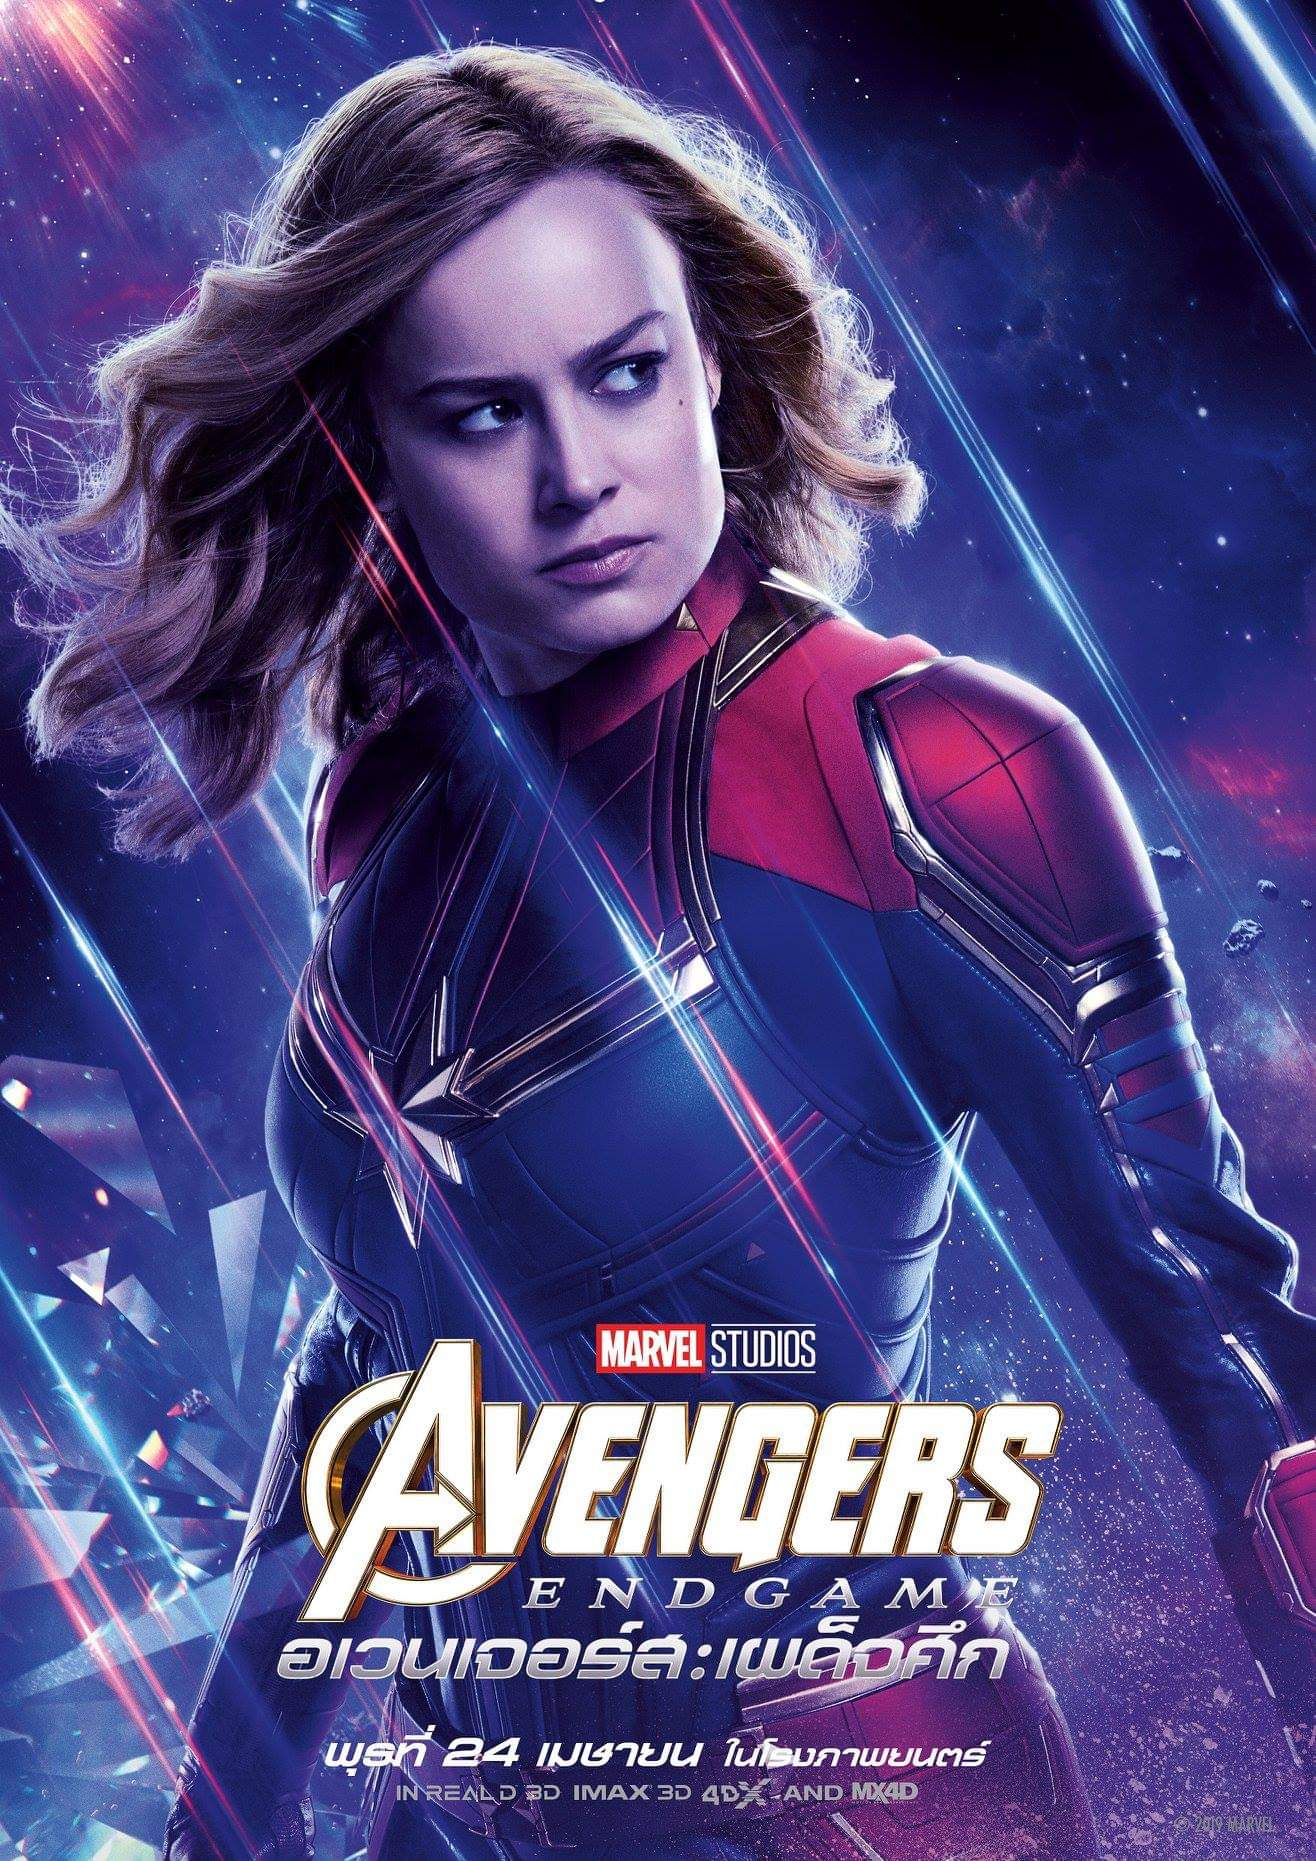 Avengers Endgame Character Posters Captain Marvel Lyles Movie Files